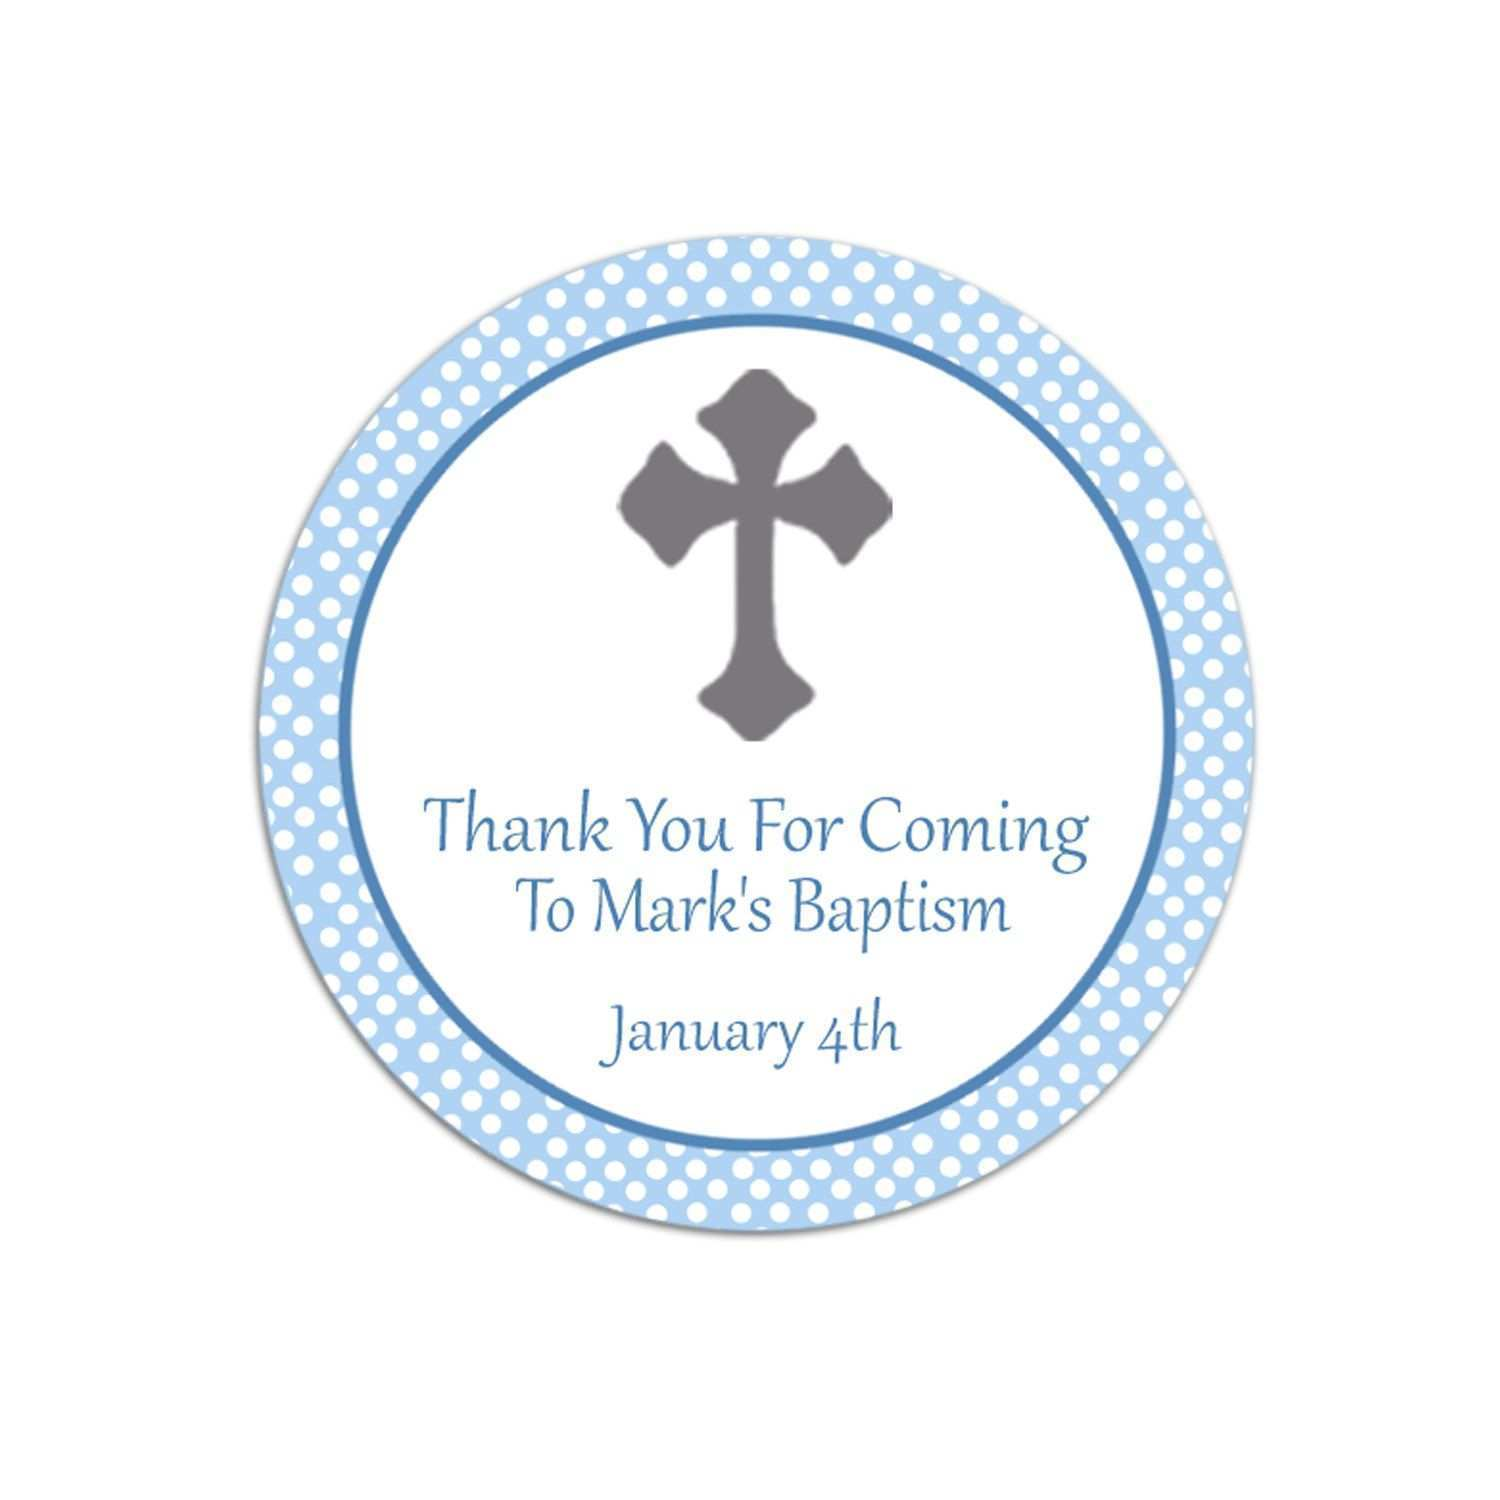 64 Create Baptism Thank You Card Template Free Download in Photoshop for Baptism Thank You Card Template Free Download